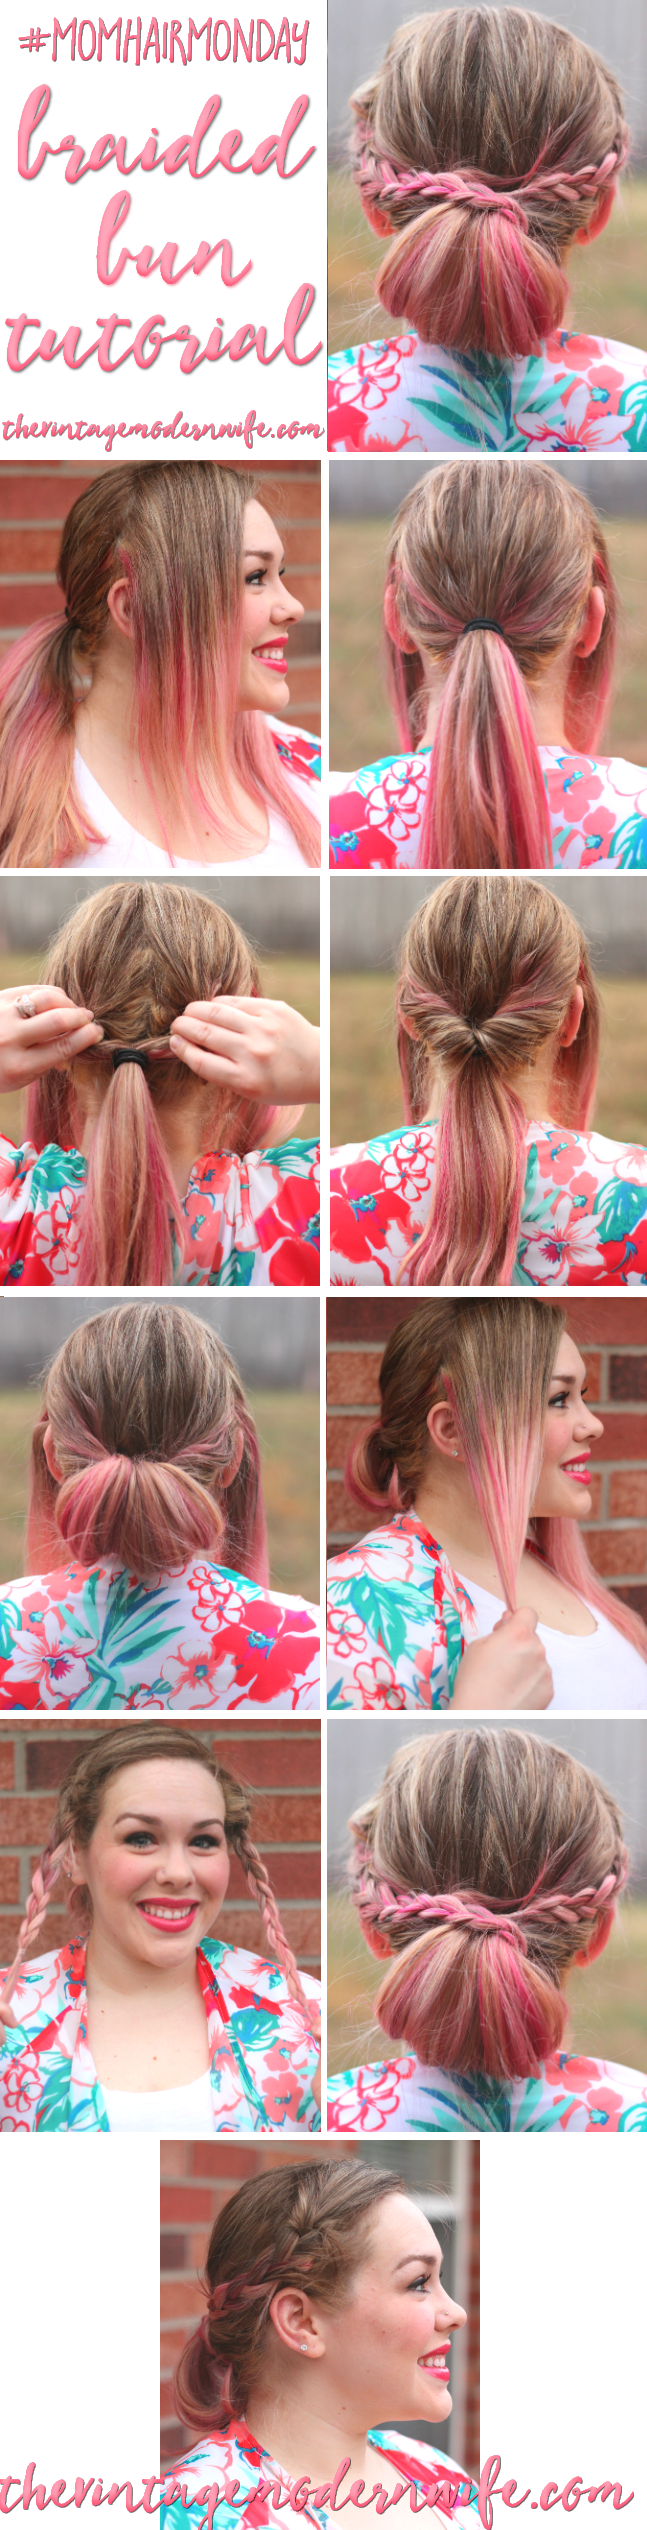 I absolutely LOVE this Braided Bun tutorial by The Vintage Modern Wife! She breaks it down into a few easy steps that helped me take my hair from drab to fab in 5 minutes! Check it out for #momhairmonday!